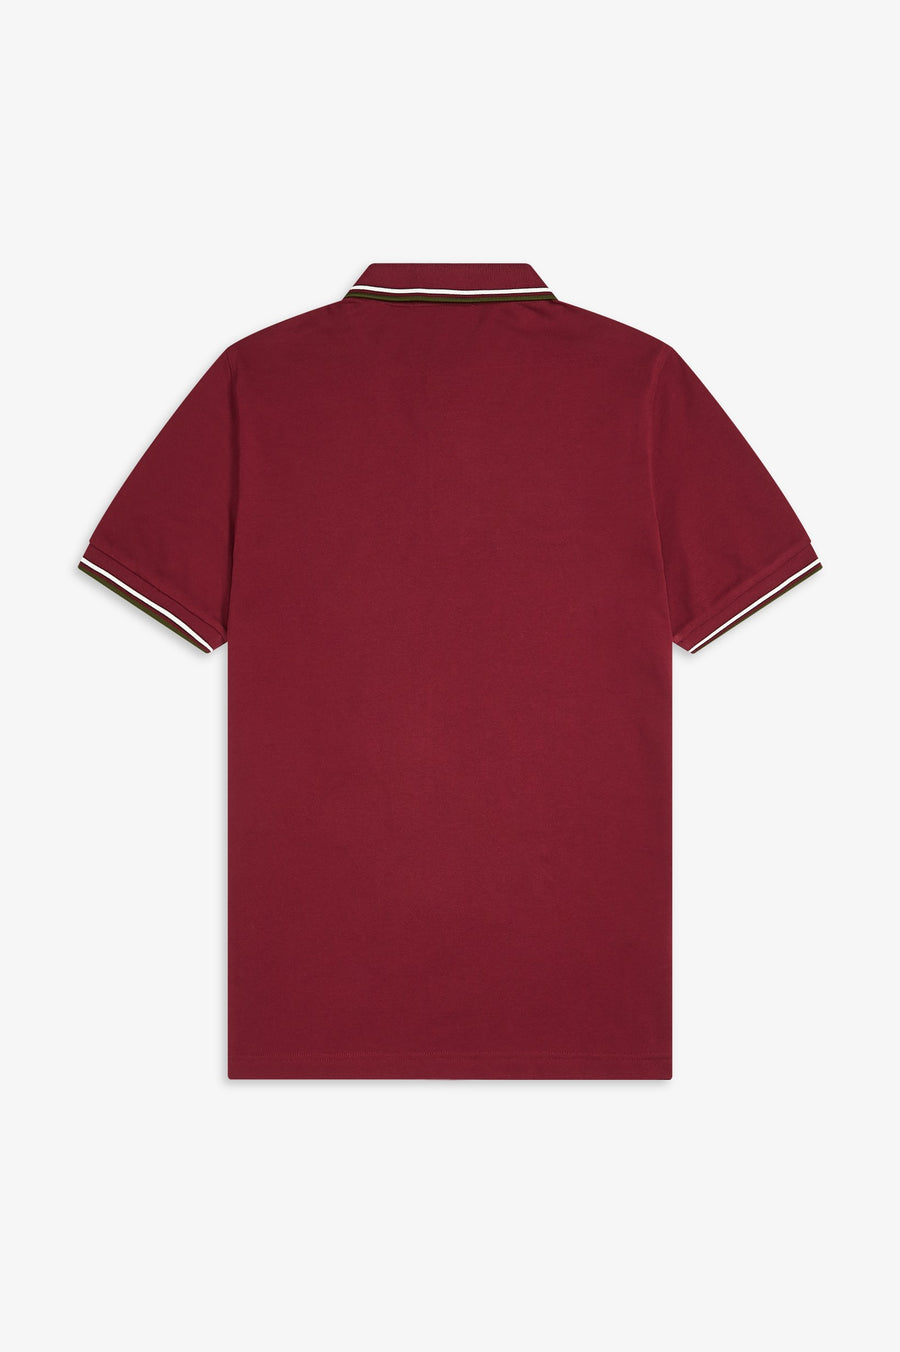 Twin Tipped Fred Perry Shirt / Maroon-Snow White-Cypress